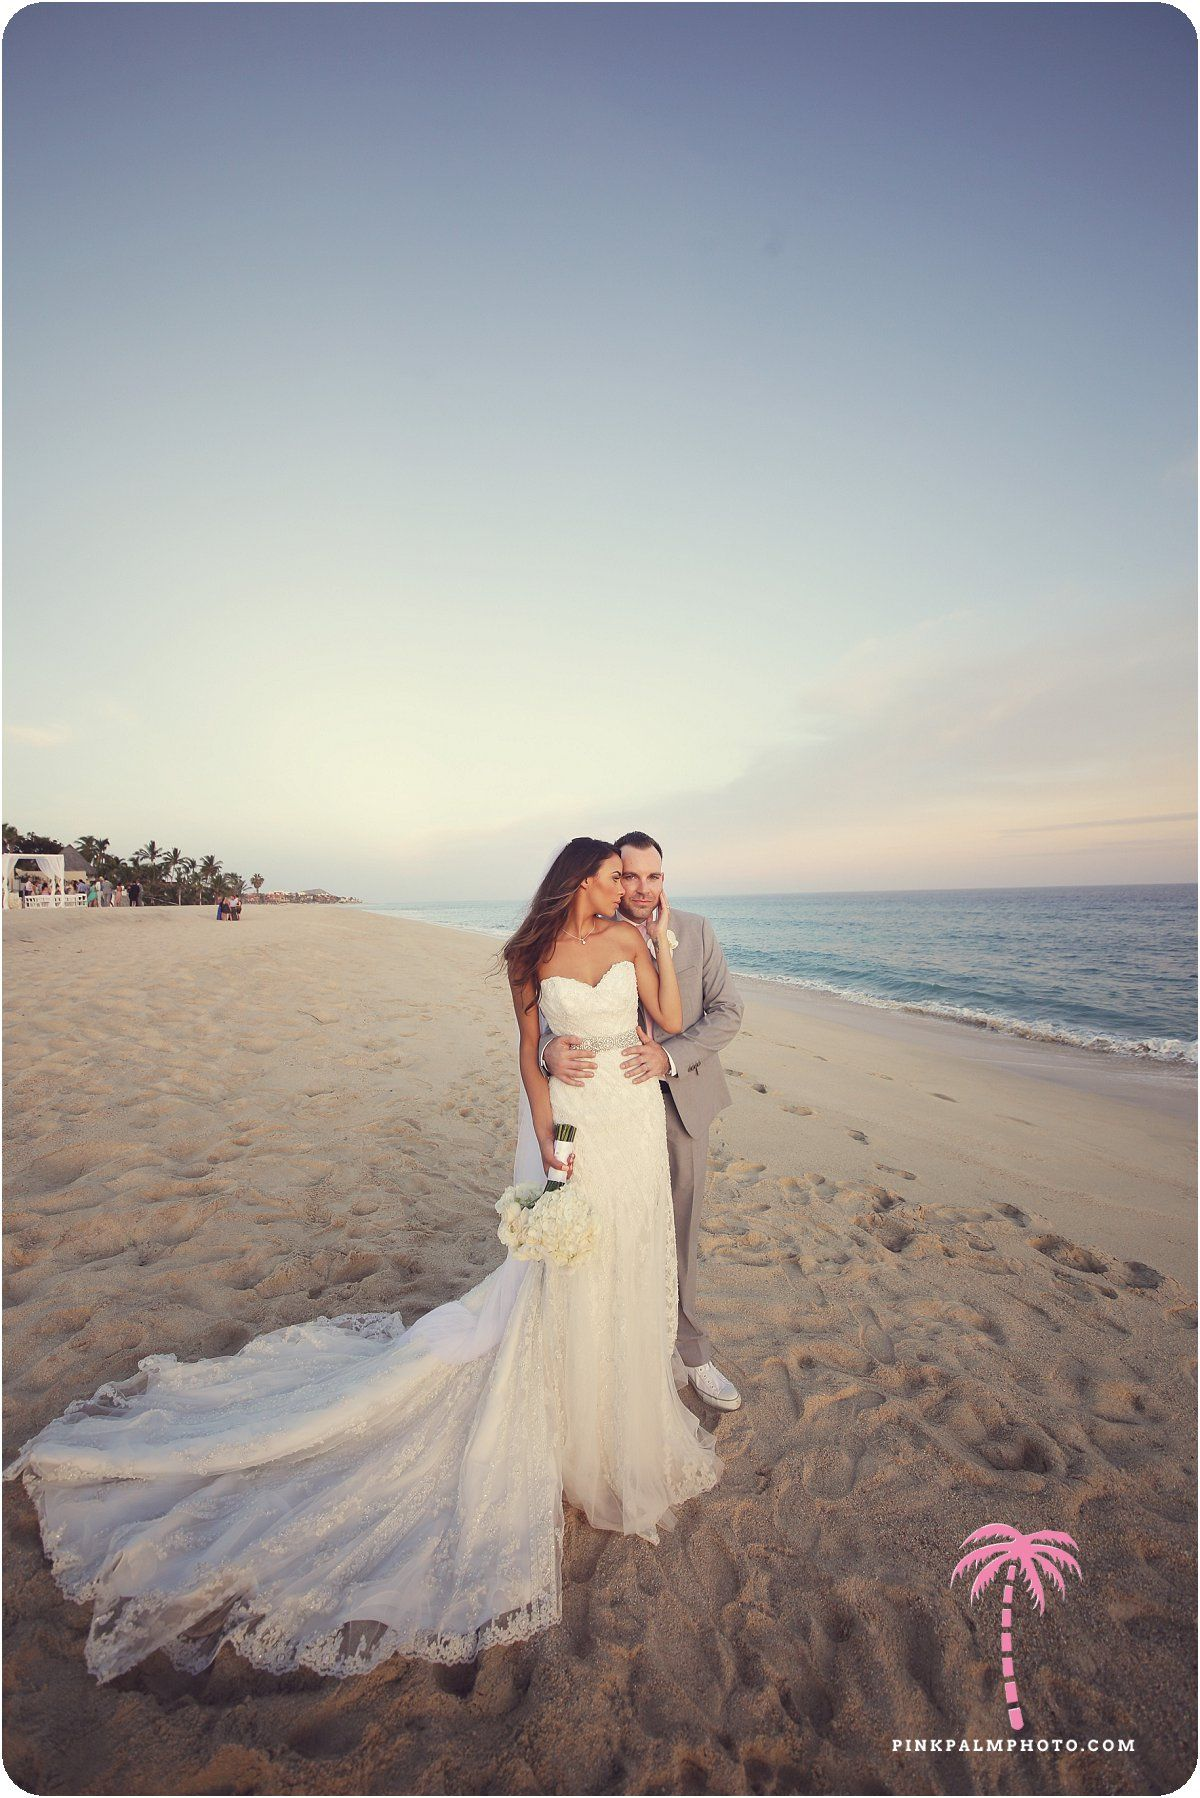 Pin by Pink Palm Photo on Real Destination Weddings